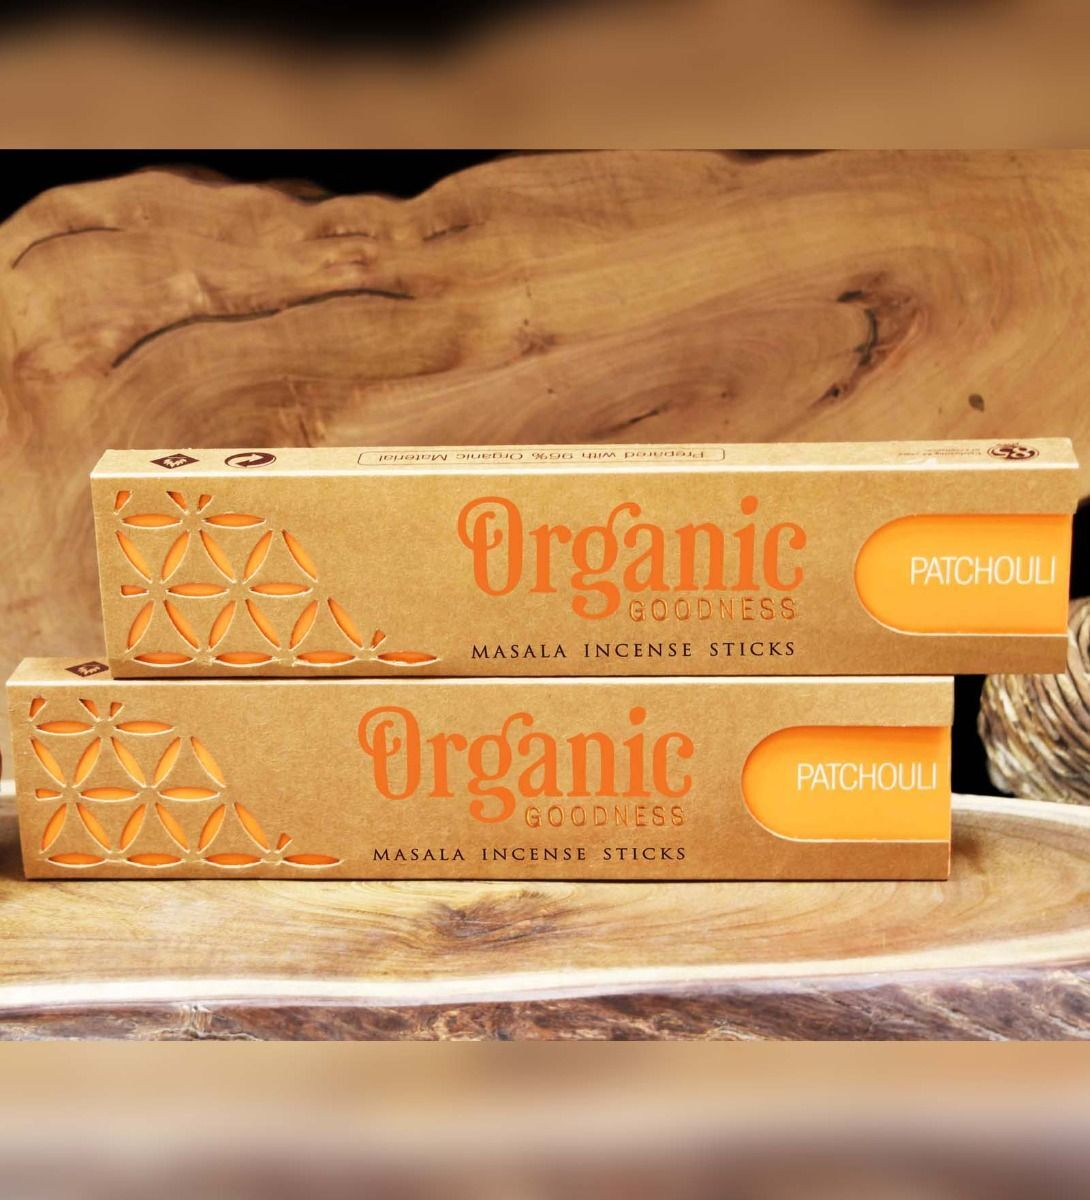 Organic Goodness Masala Incense - PATCHOULI